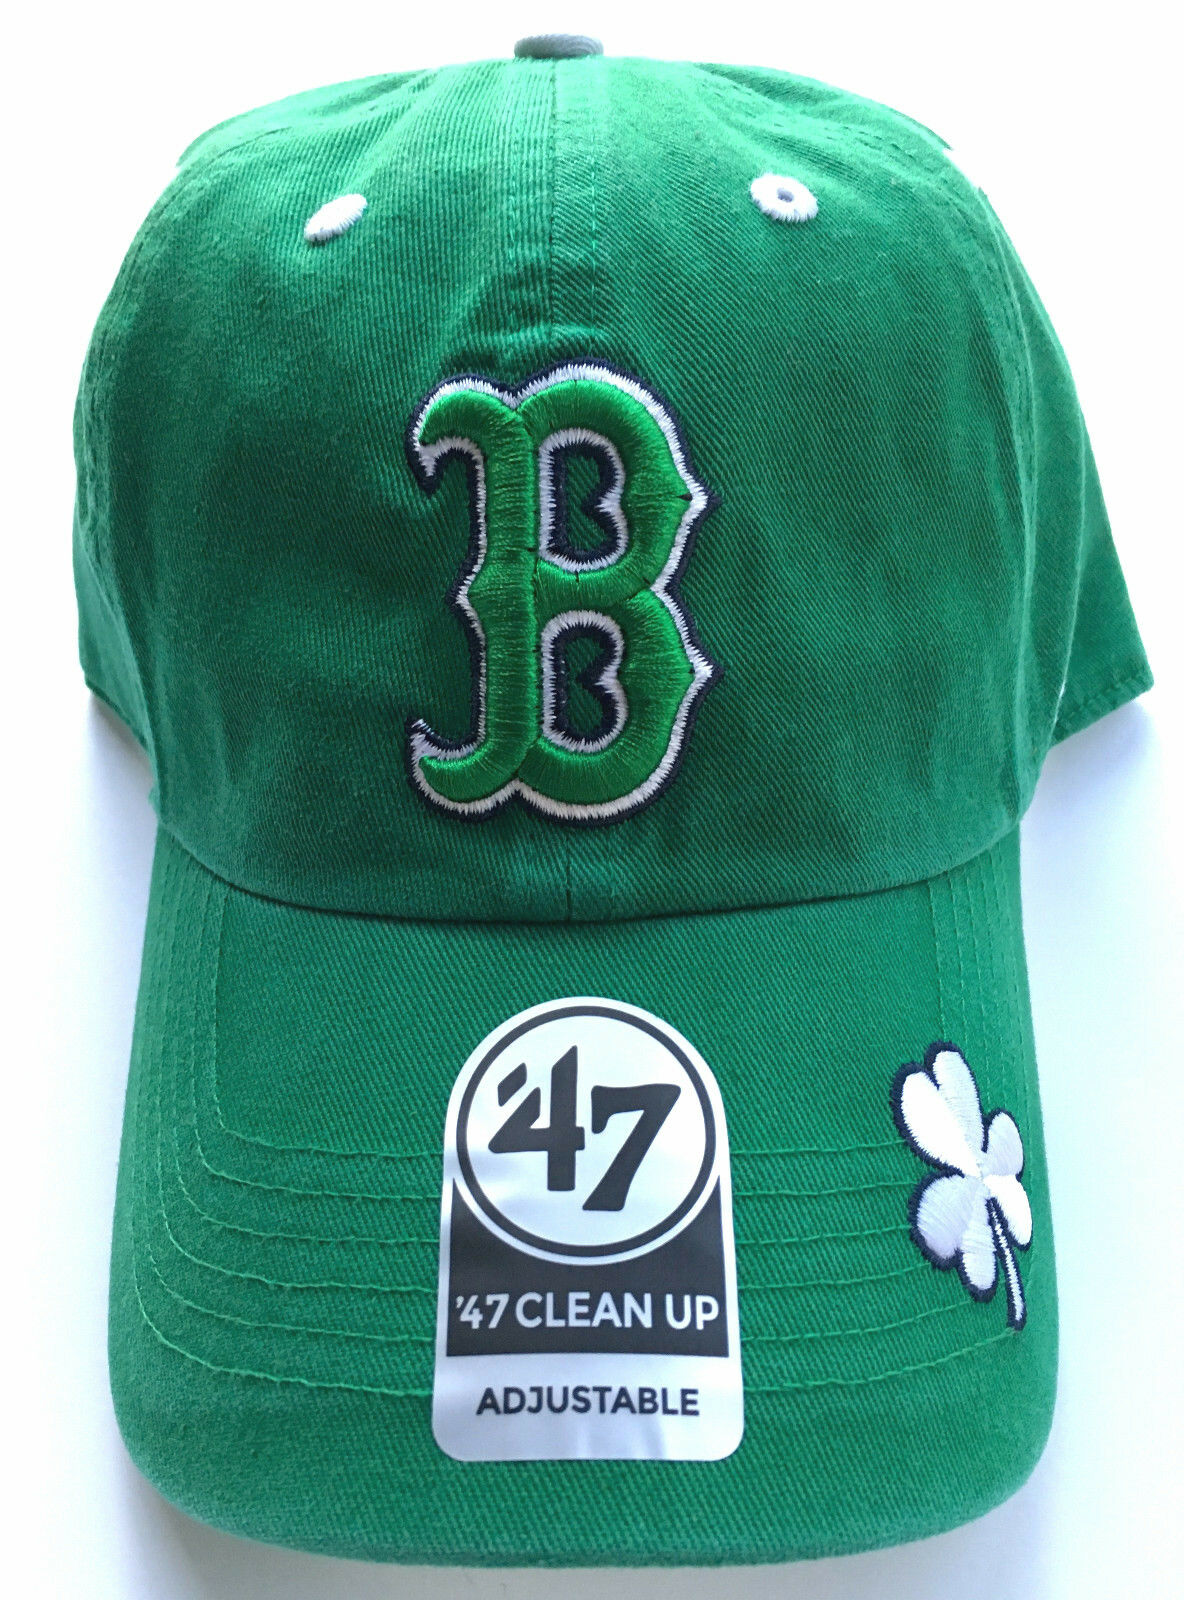 0c2d488c7d503 Details about BOSTON RED SOX OFFICIALLY LICENSED ST PATRICKS DAY KELLY GREEN  SHAMROCK HAT CAP